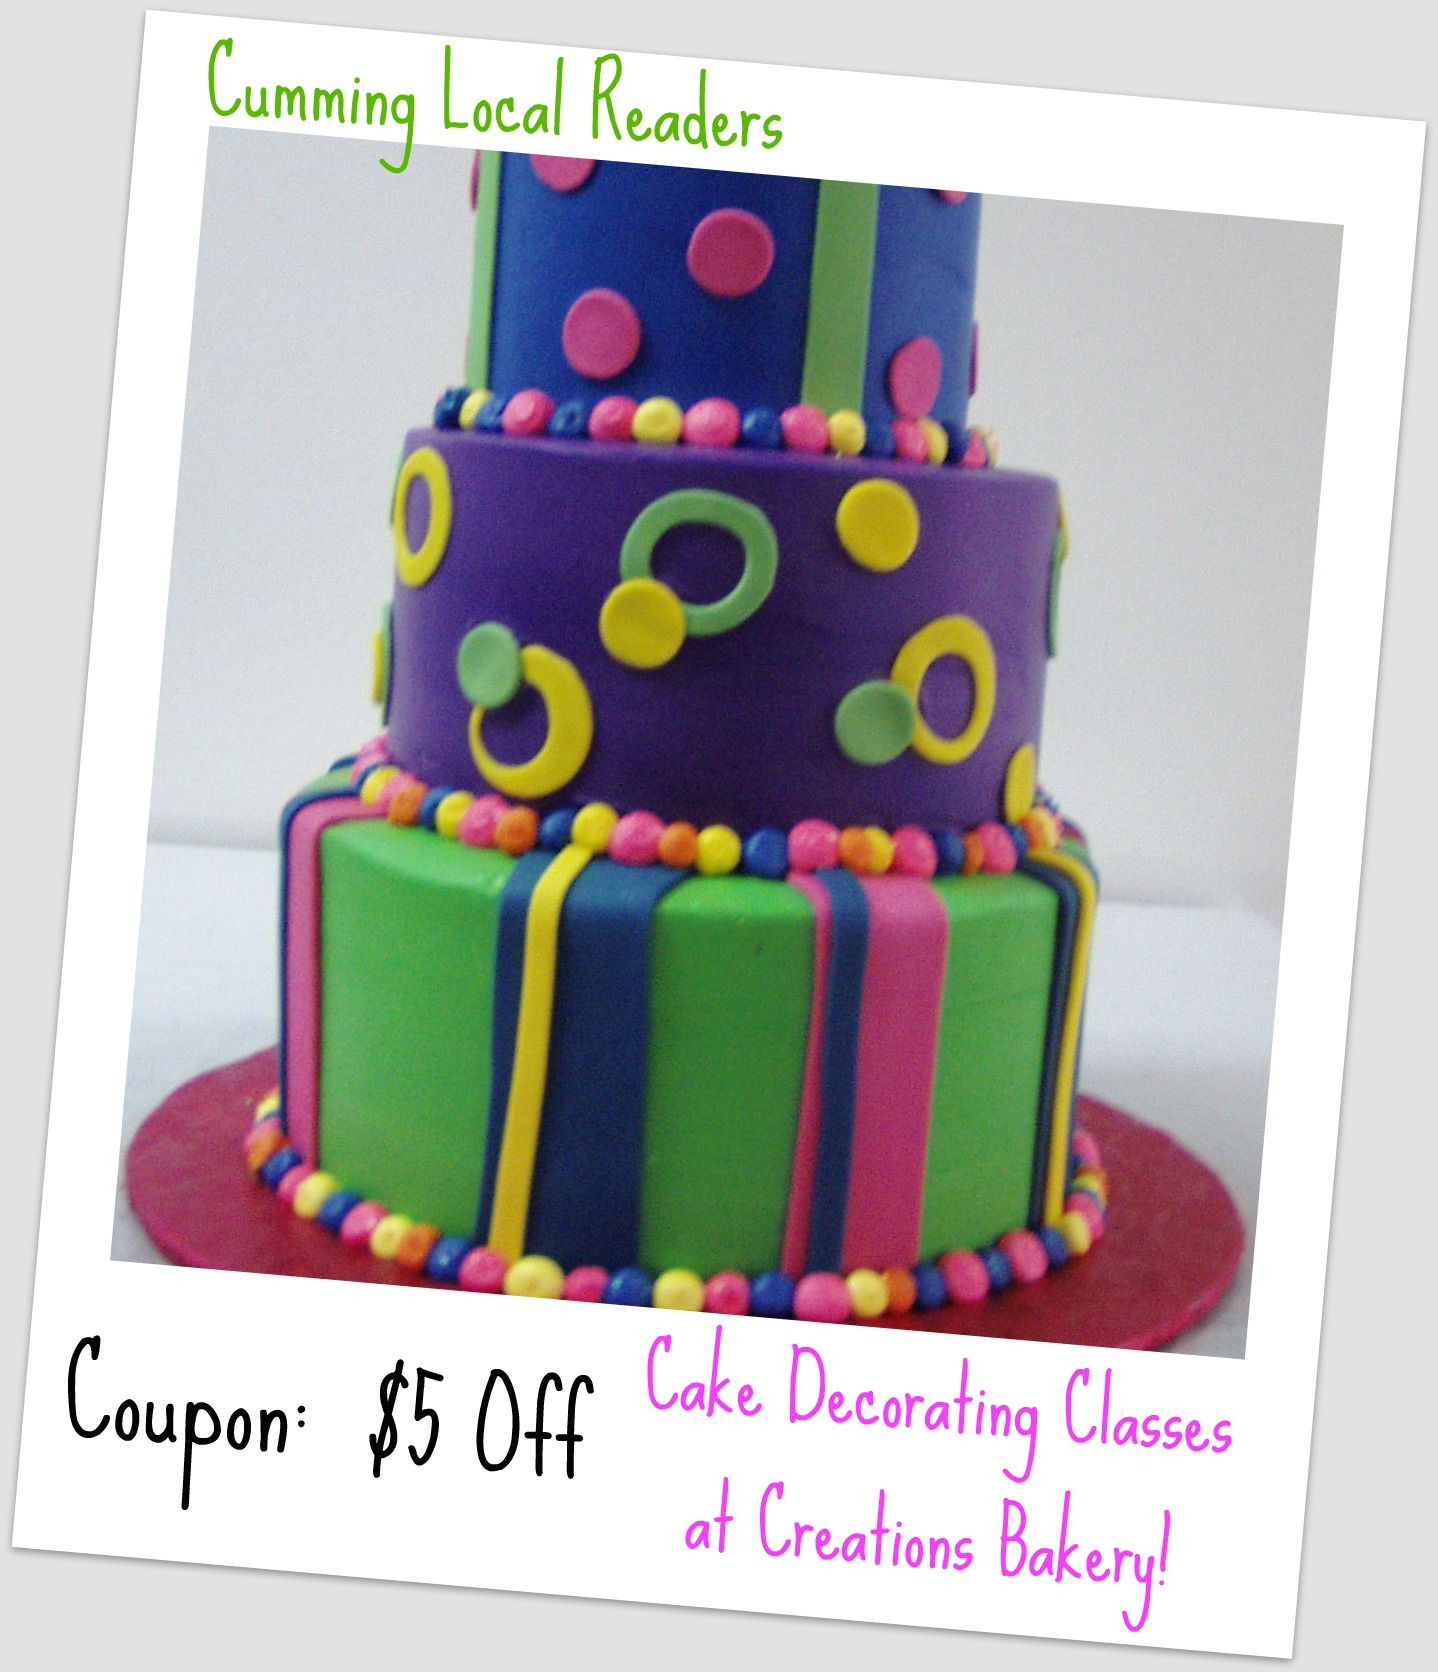 Cake Decorating Store Voucher Codes : Birthday Giveaway: Creations Bakery - Cumming Local ...